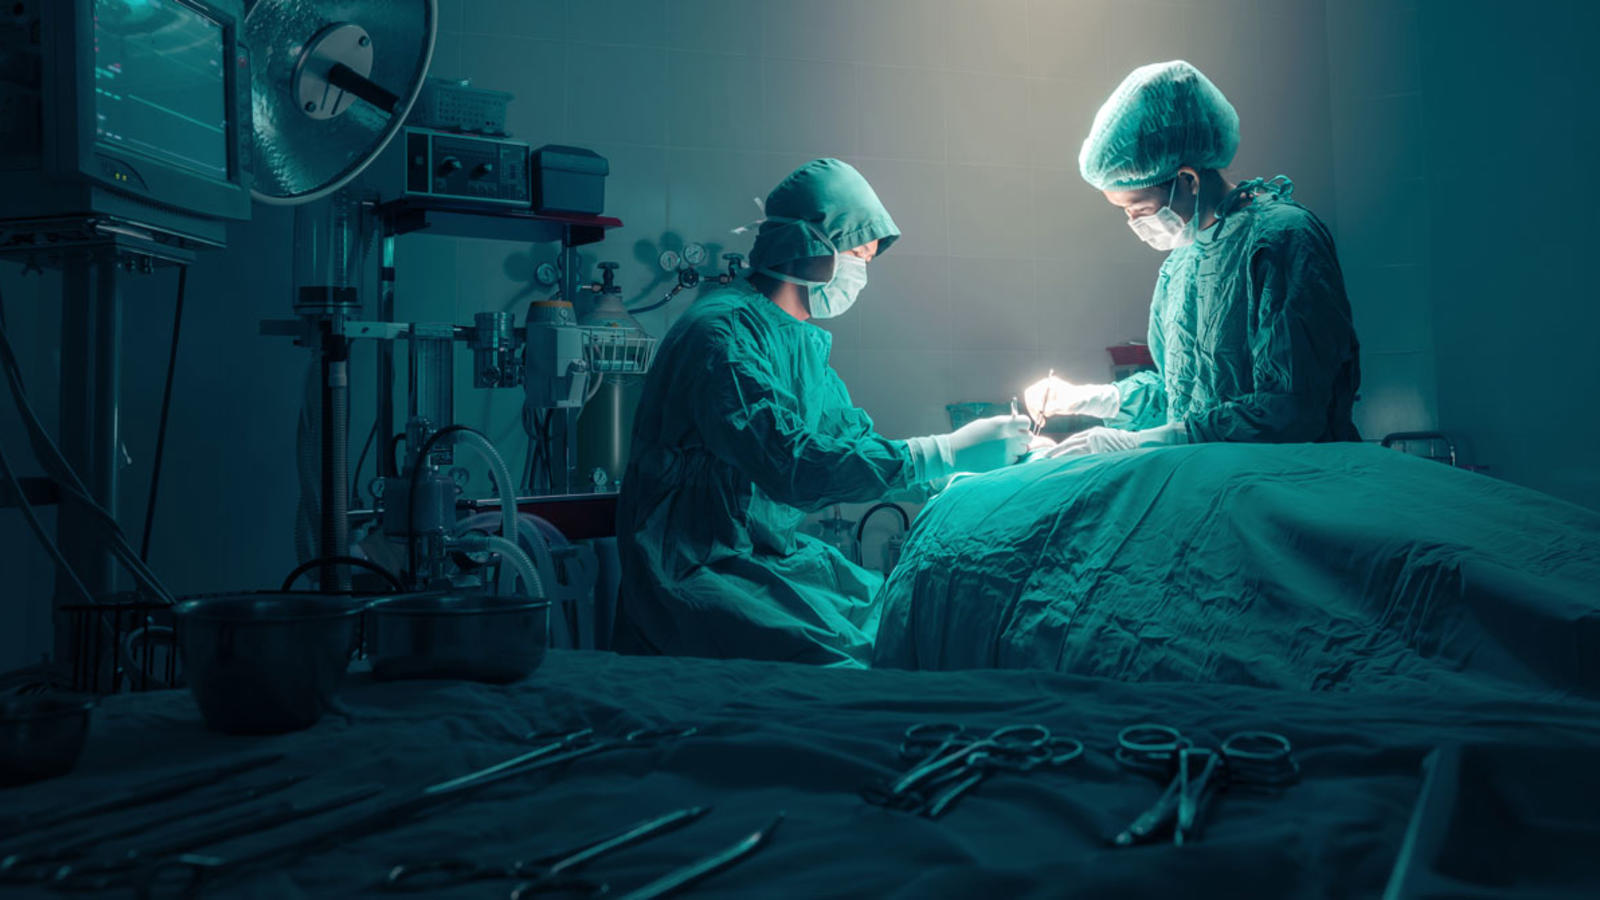 Doctors preforming surgery in a dimly lit operating room